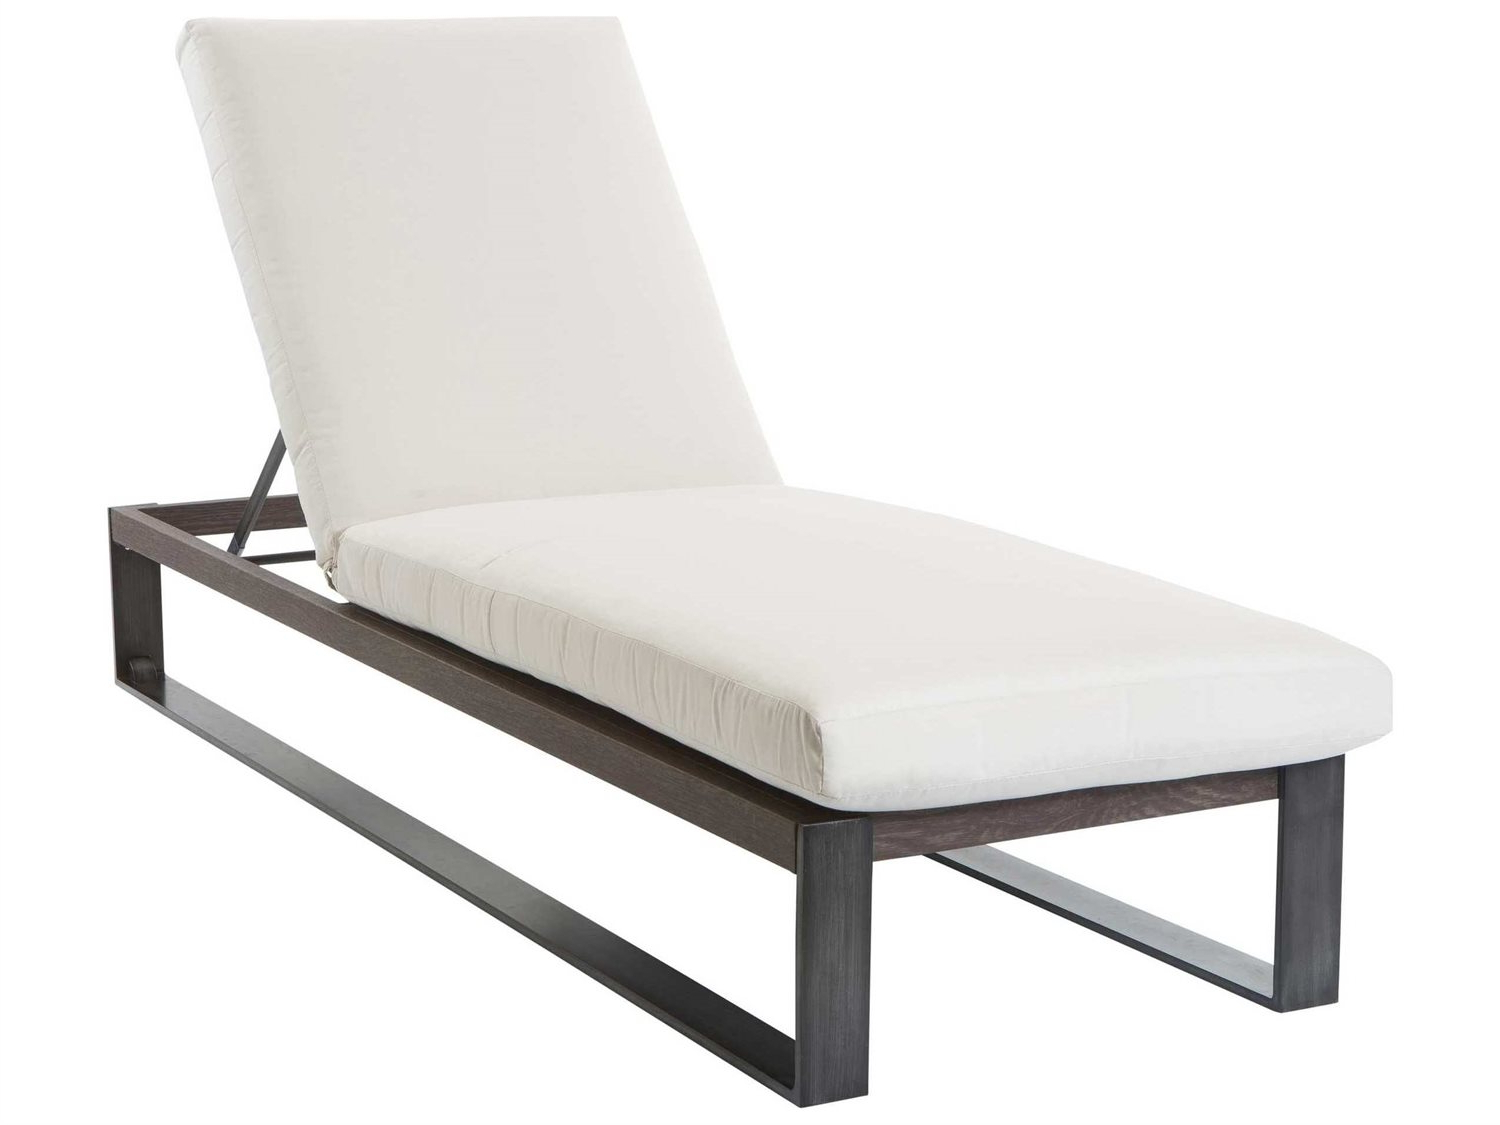 Famous Outdoor Aluminum Adjustable Chaise Lounges With Ebel Lucca Aluminum Adjustable Chaise Lounge With Wheels (View 23 of 25)